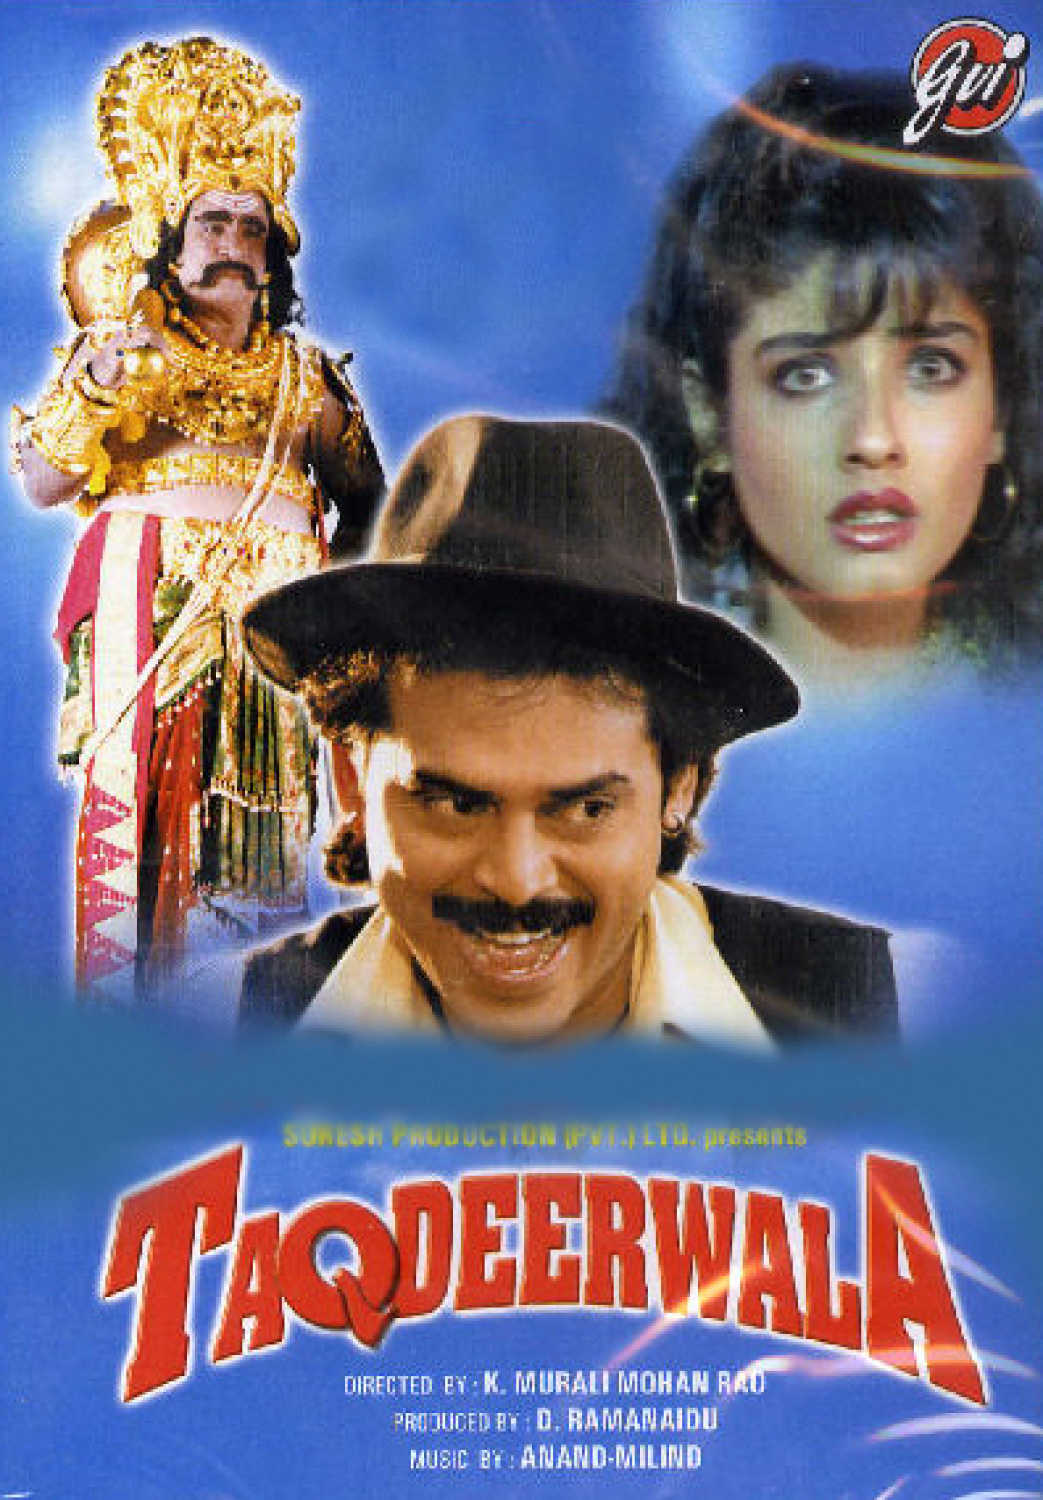 Taqdeerwala 1995 Review Star Cast News Photos Cinestaan